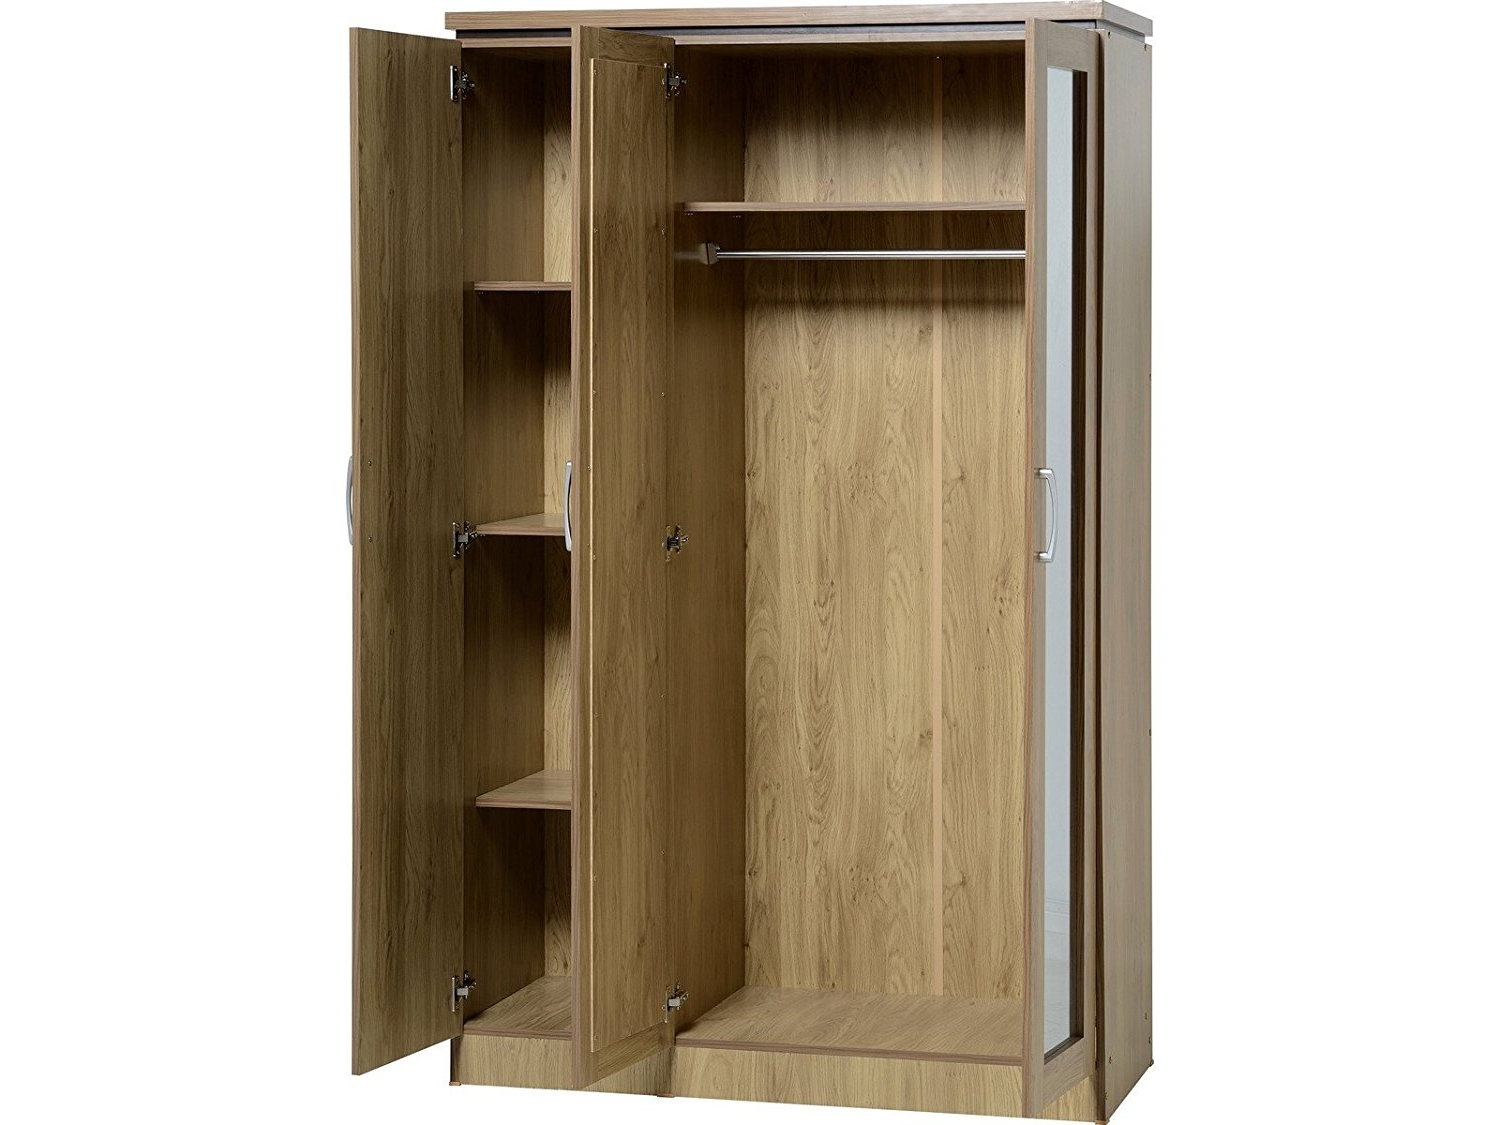 Oak 3 Door Wardrobes With Most Up To Date Seconique Charles 3 Door Wardrobe With Mirrors – New All Hanging (View 11 of 15)